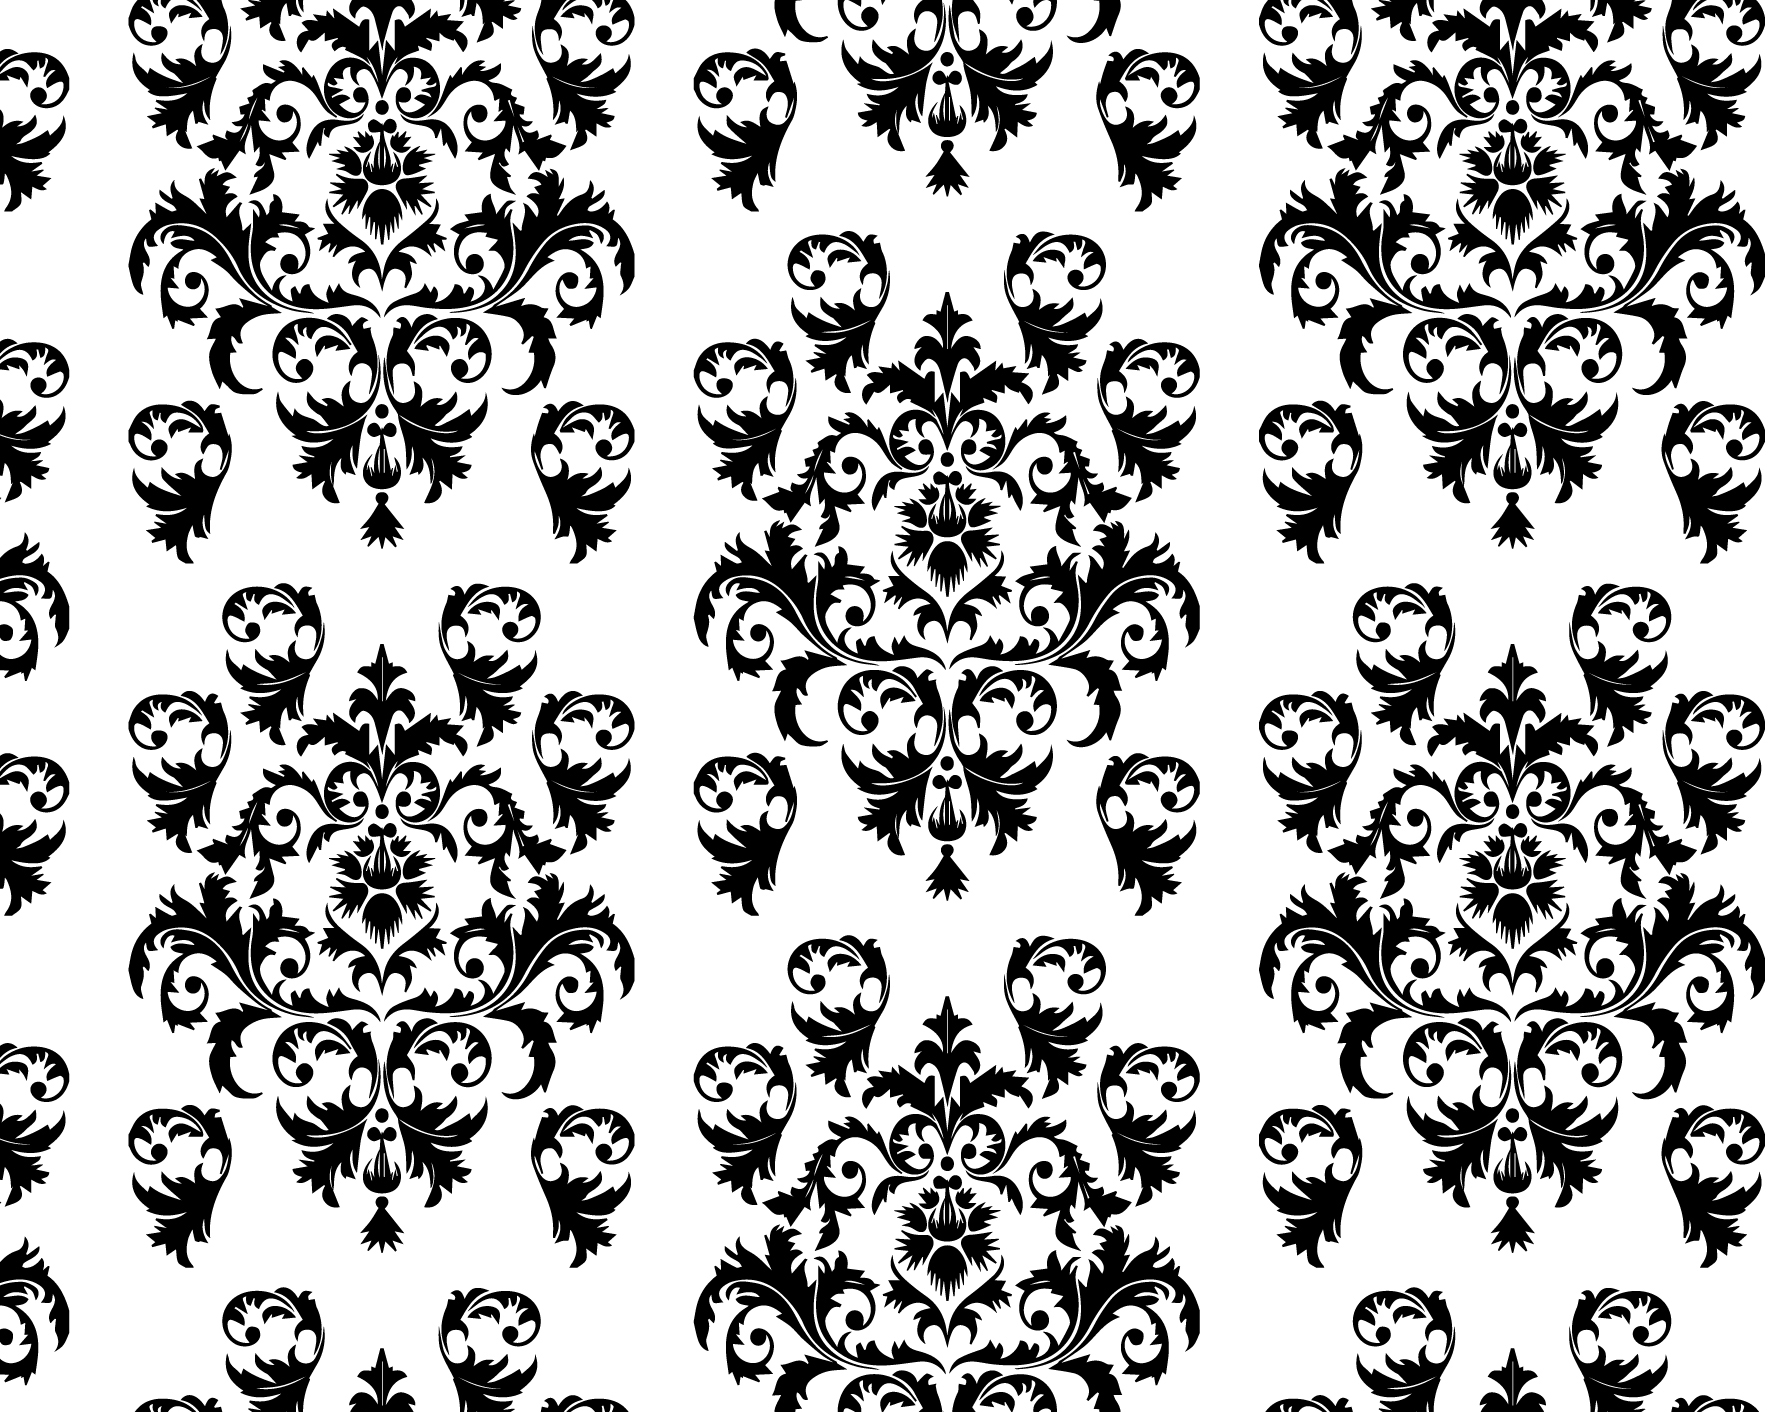 20 Victorian Patterns Vector Images - Victorian Patterns ...